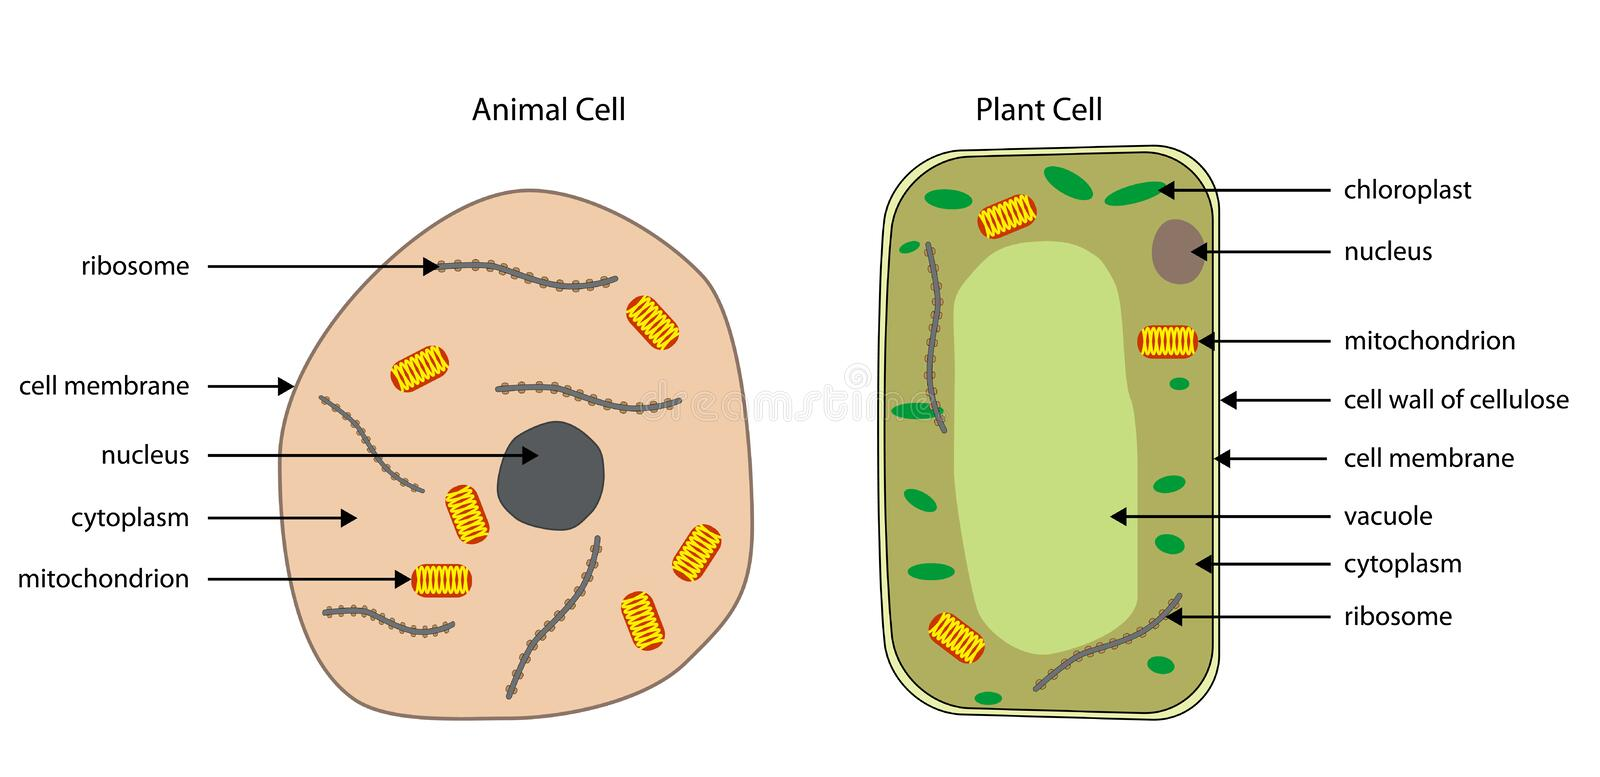 Diagrams of animal and plant cells stock vector illustration of download diagrams of animal and plant cells stock vector illustration of biology plant ccuart Image collections